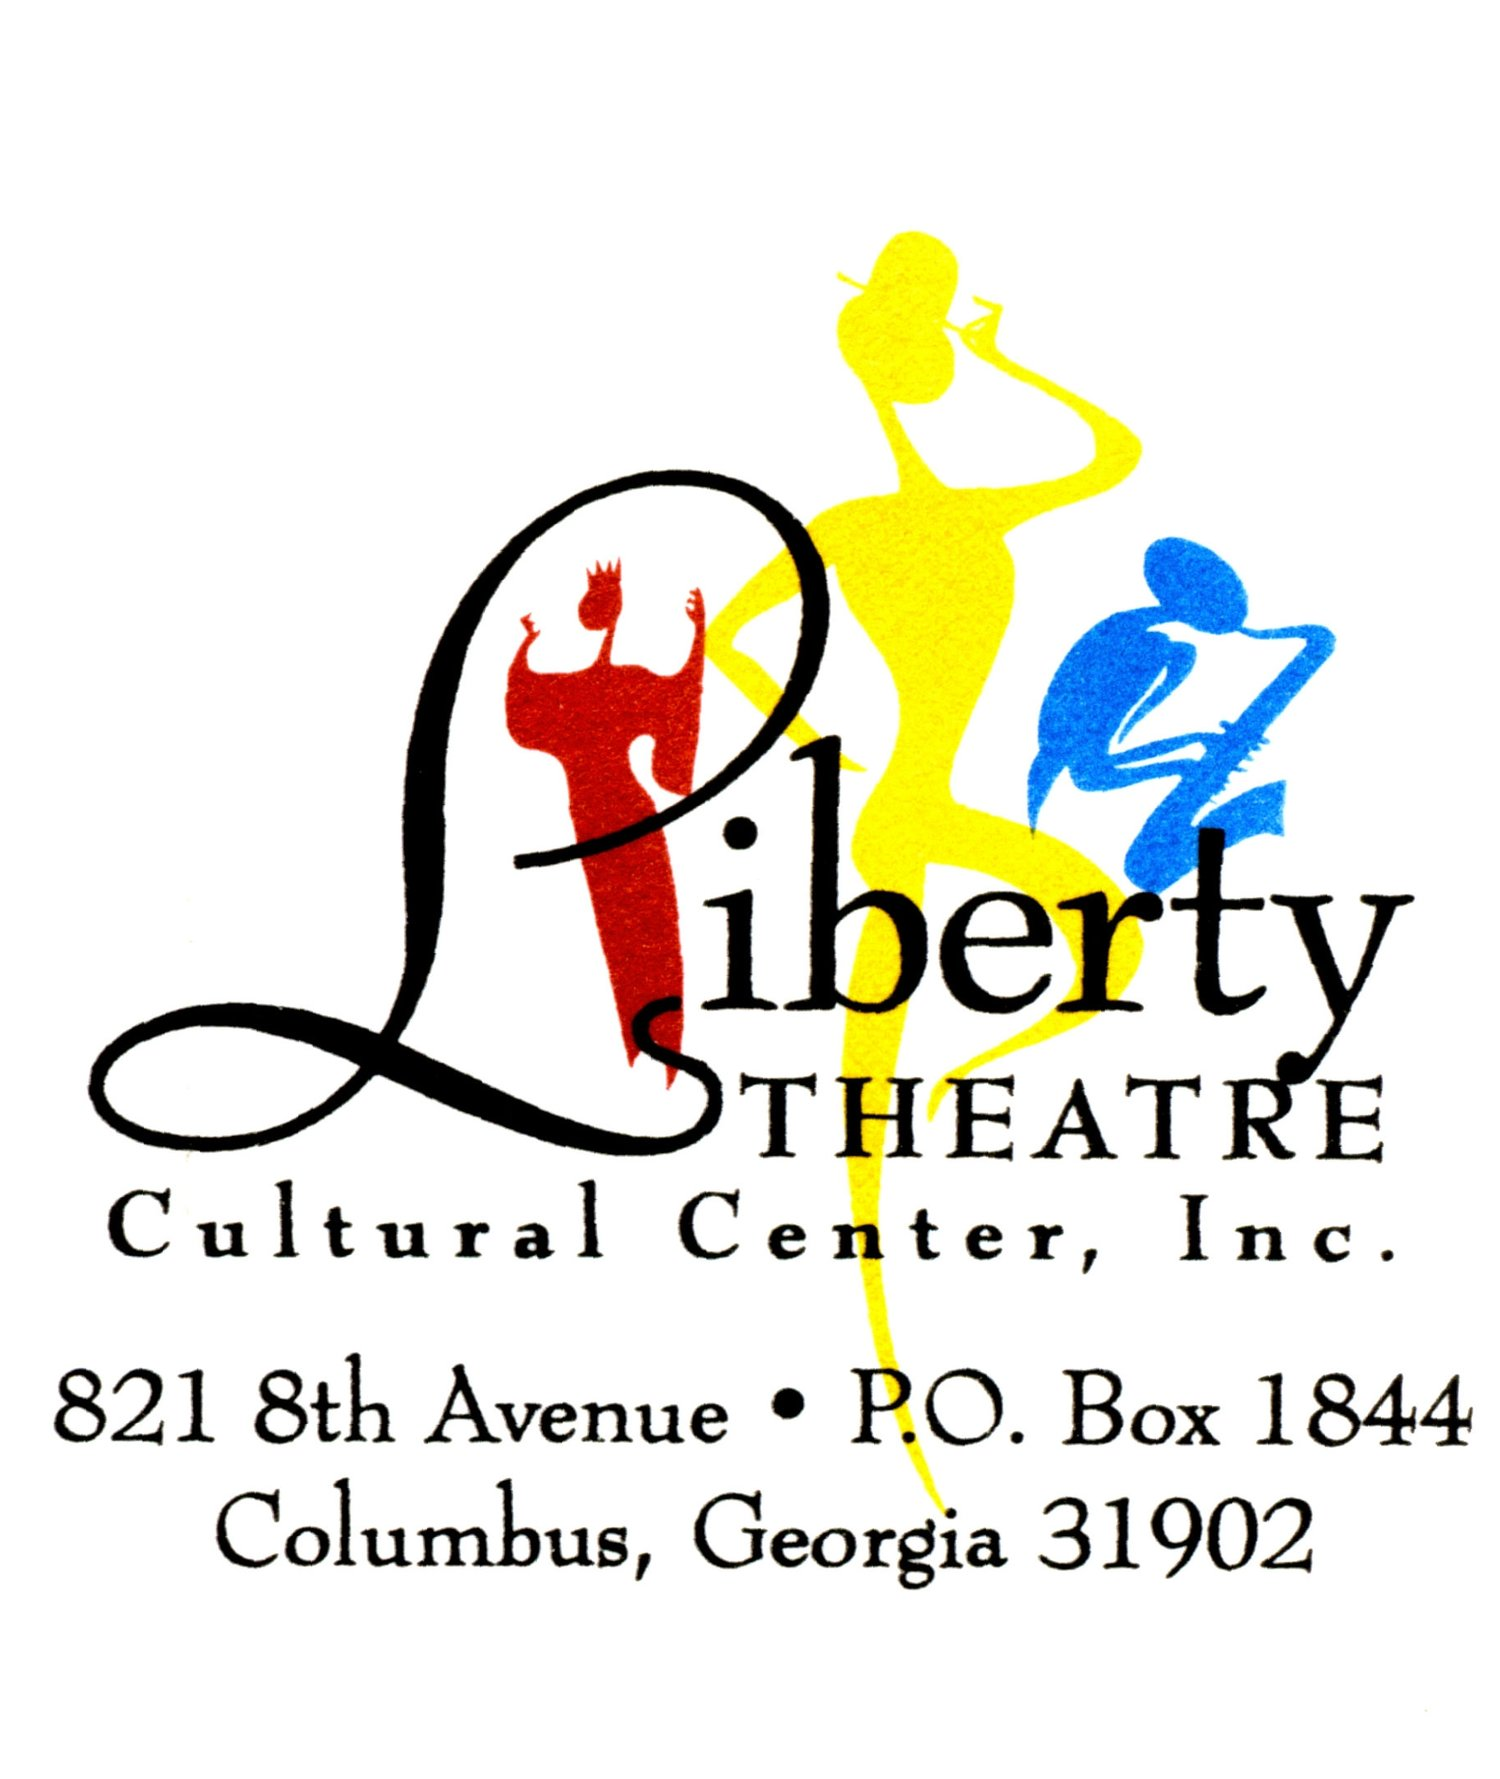 The Liberty Theatre Cultural Center, Inc.